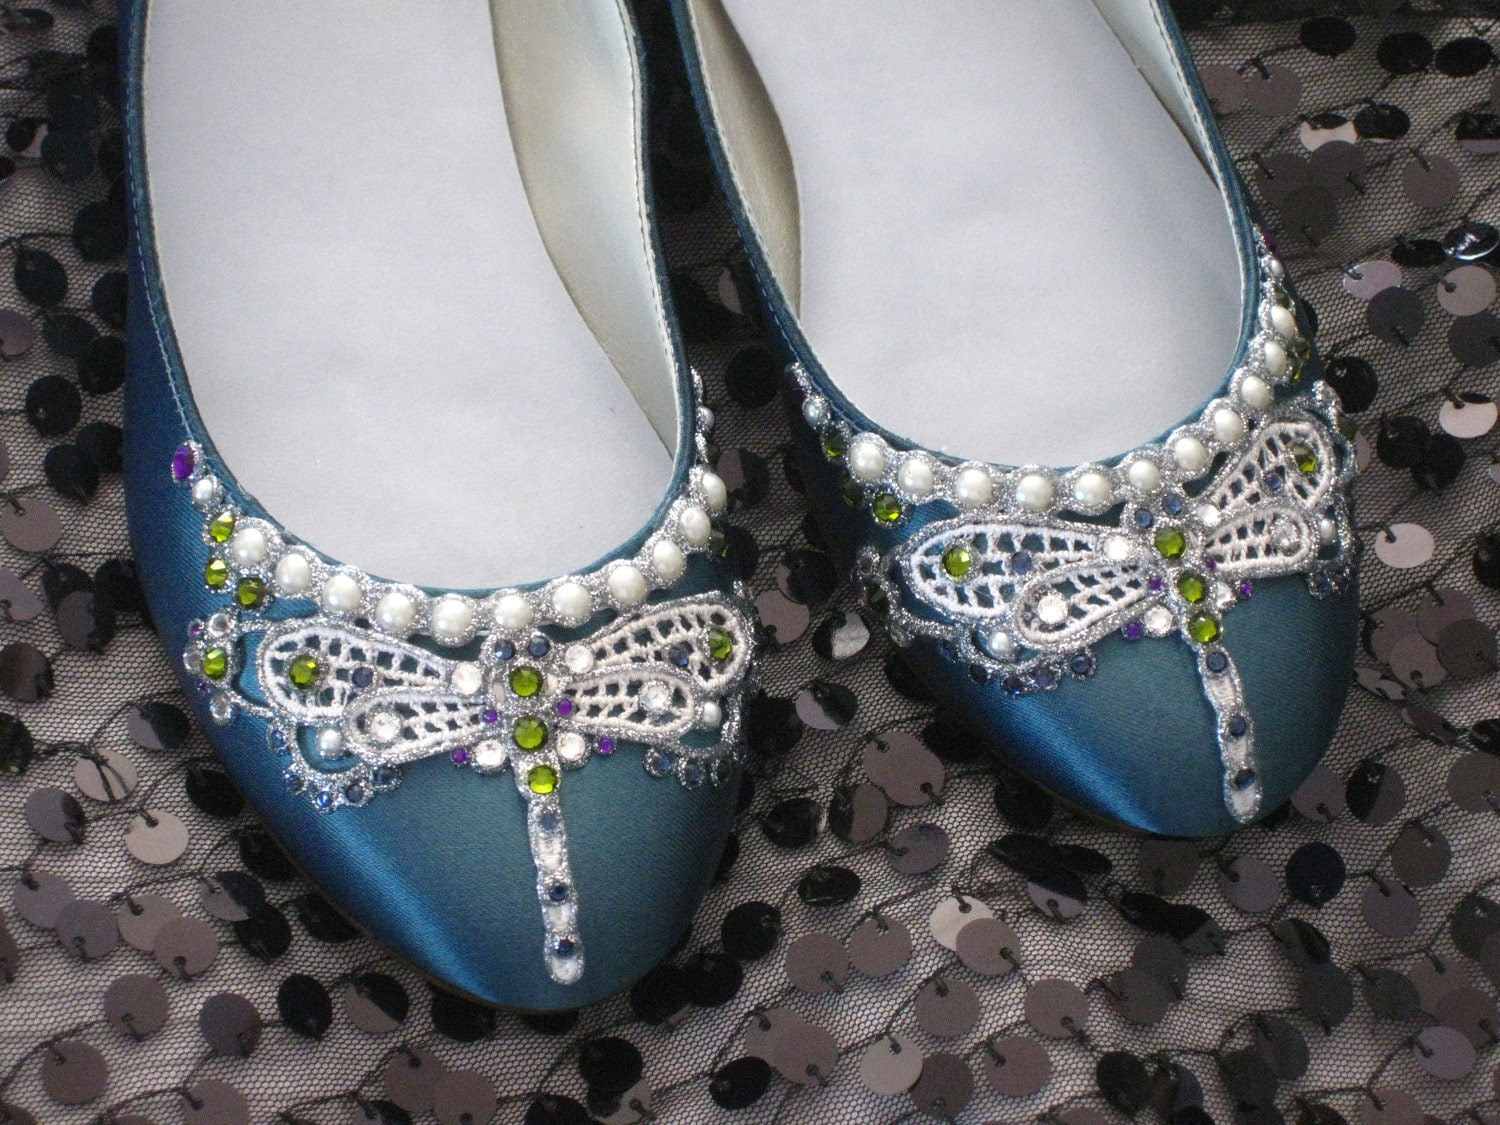 Art Deco Jewel Tone Dragonfly Ballet Flats Wedding Shoes - Any Size - Pick your own shoe color and crystal color